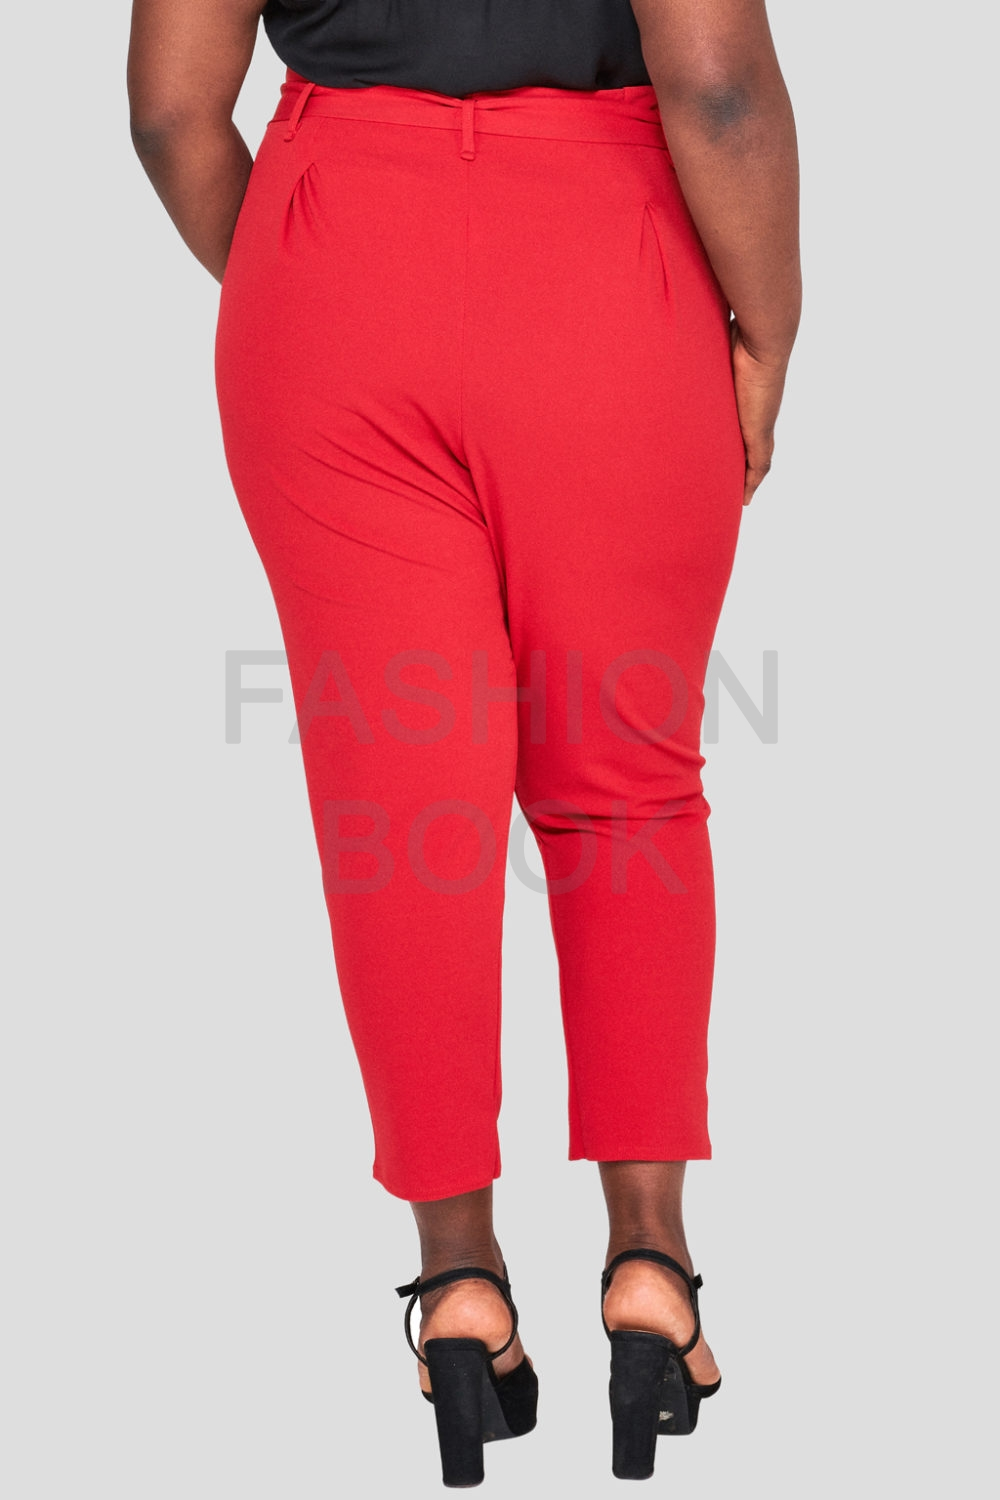 Red Plus Size Cigarette Trouser Wholesale Fashion Book